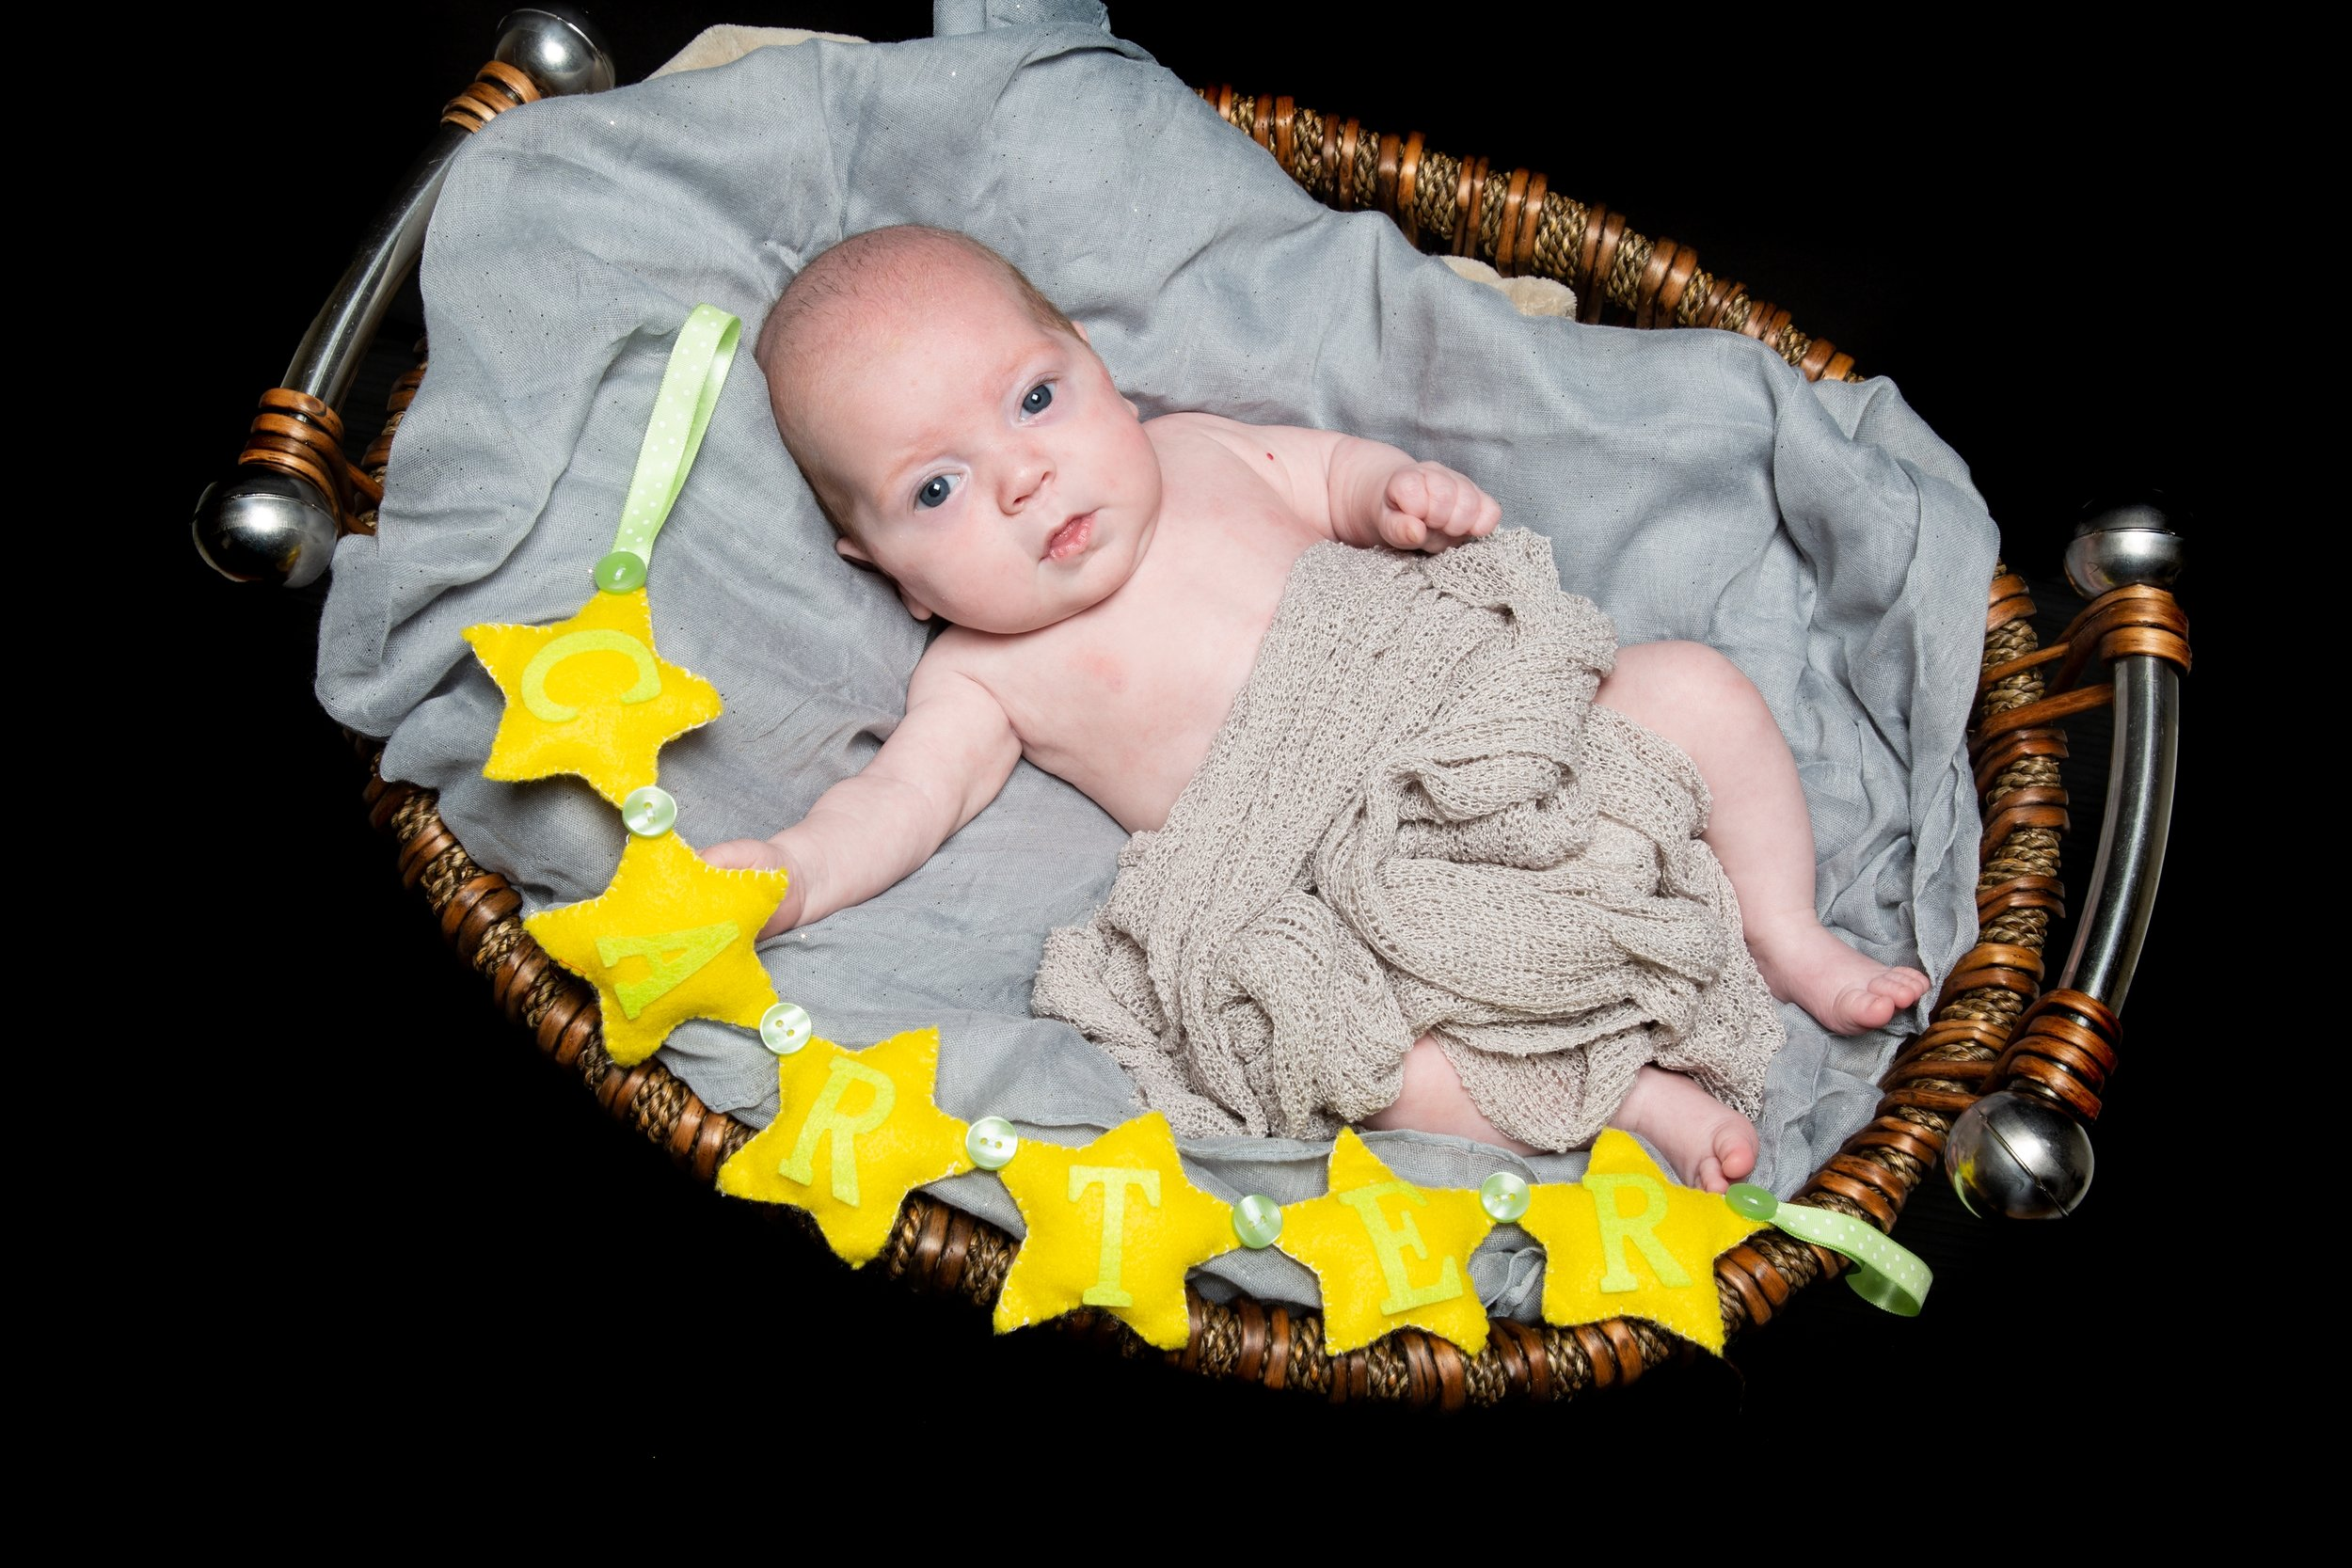 zigzag-photography-leicester-newborn-photographer-photo-shoot-photo-studio-leicester-newborn-baby-props-ideas